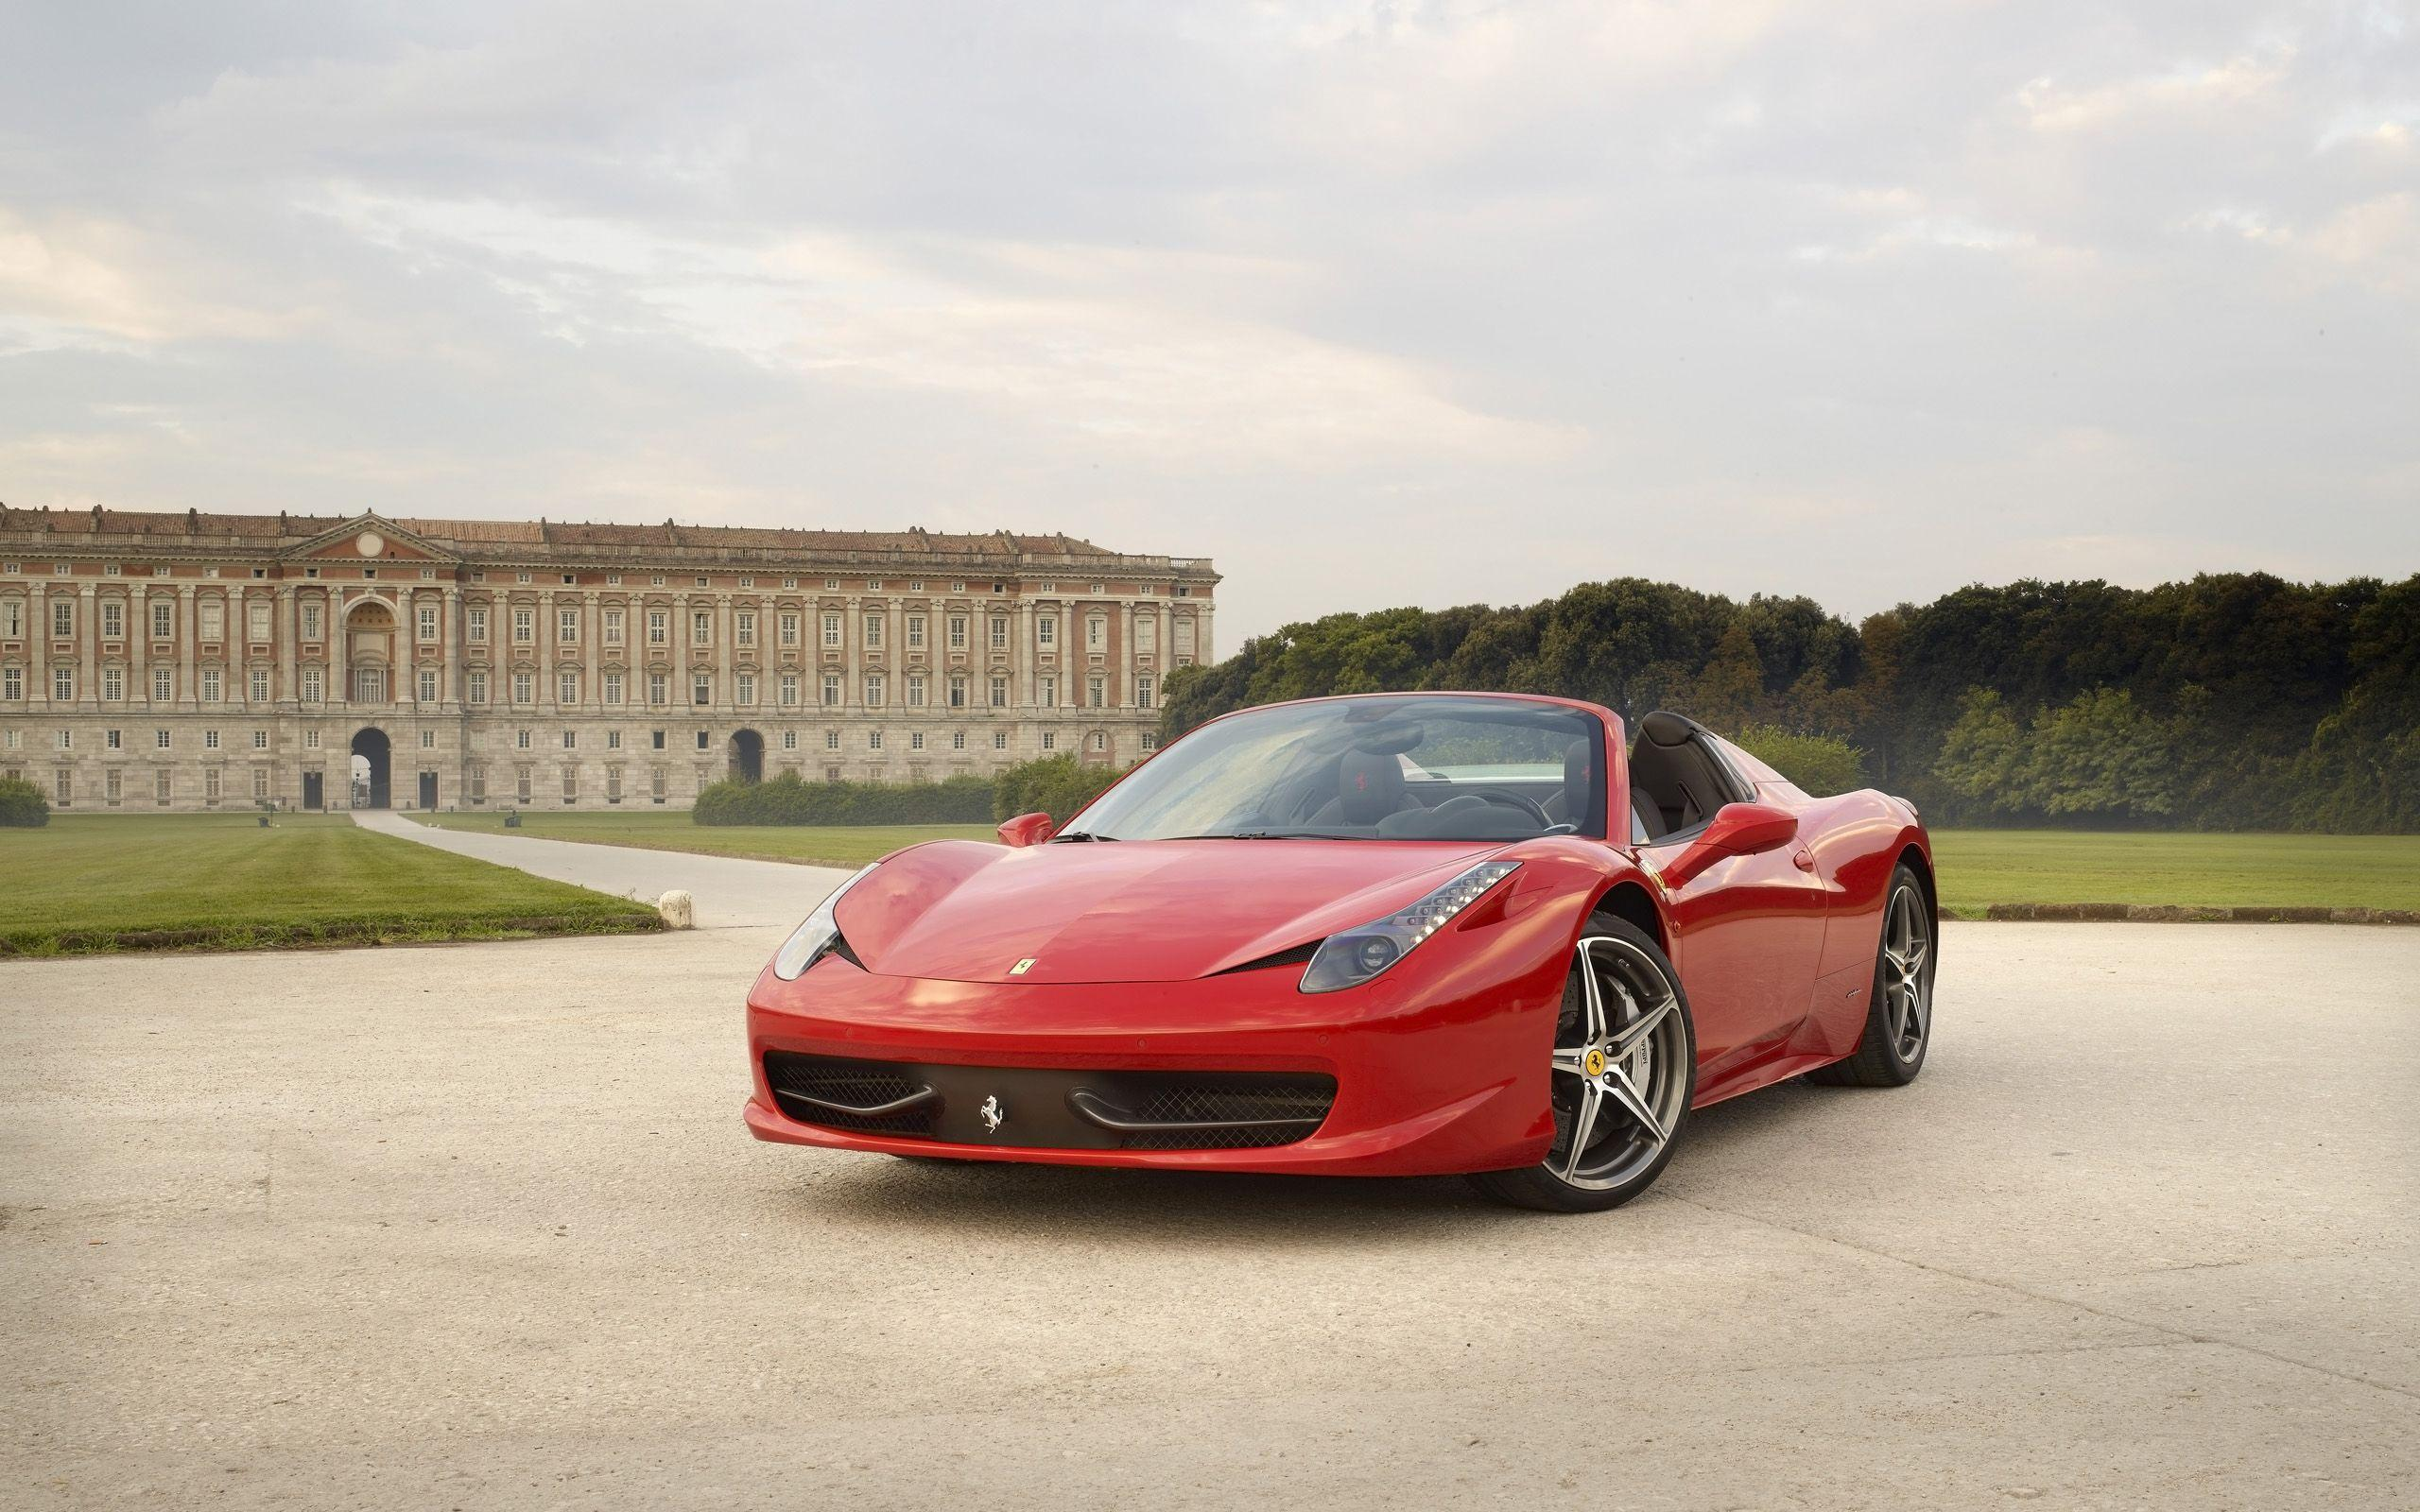 Ferrari 488 Spider Wallpapers, Top Ferrari 488 Spider HQ Pics